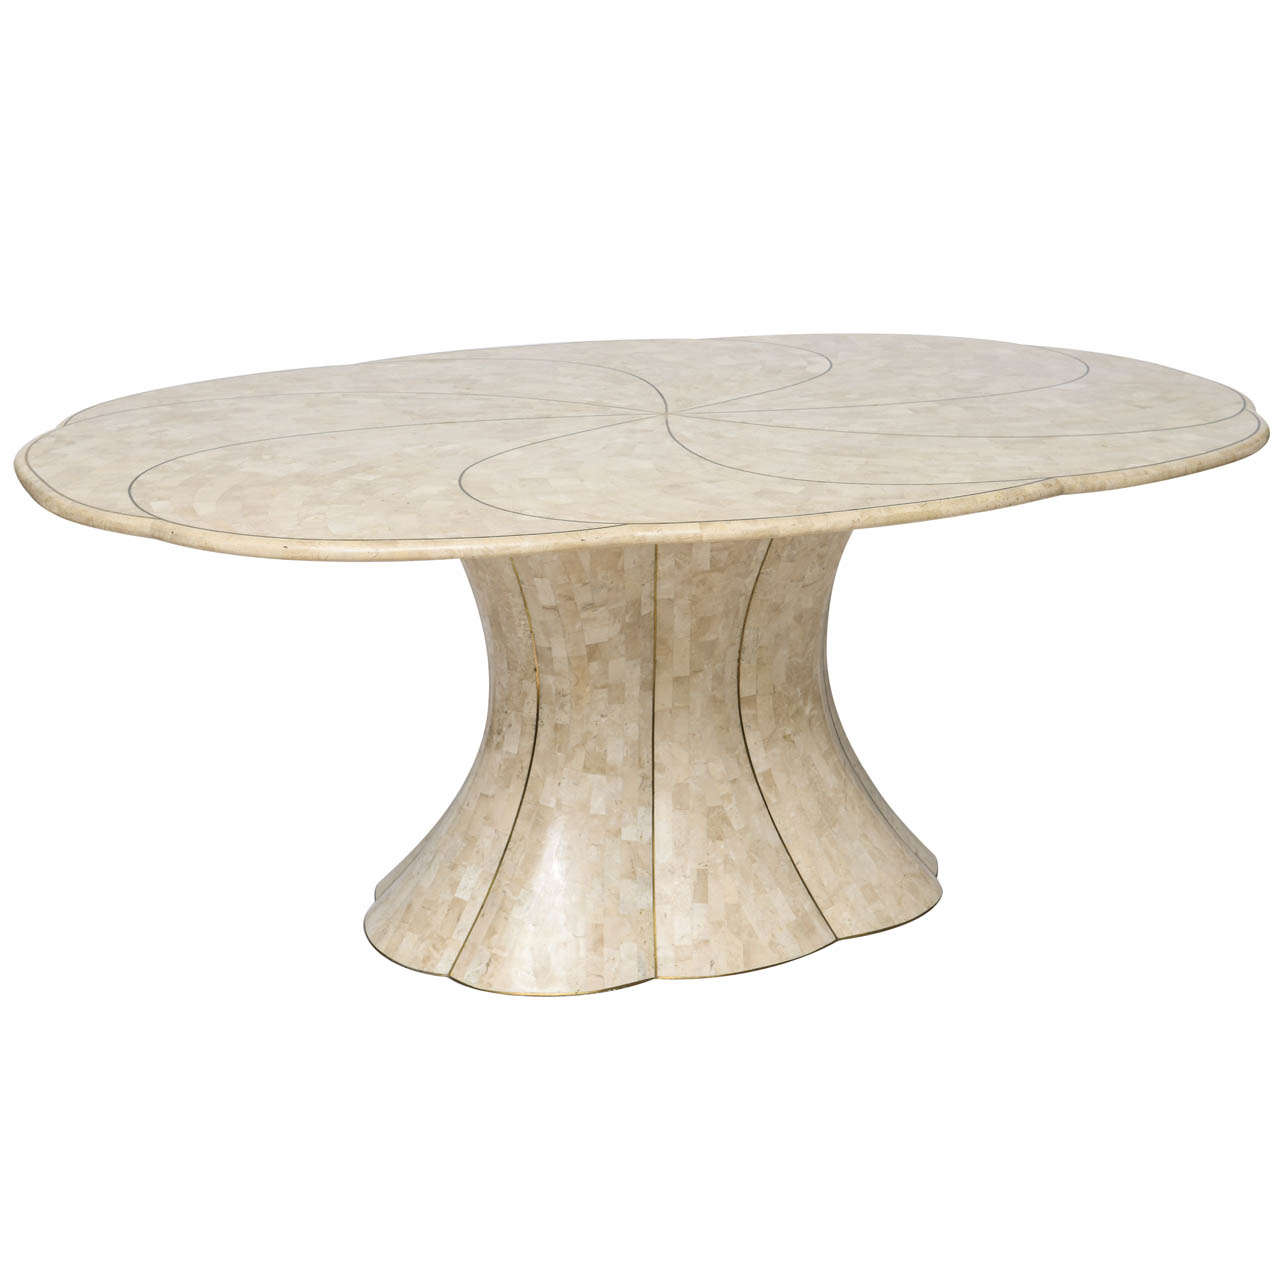 Perfect Maitland Smith Tessellated Stone Dining Table With Brass Inlays 1